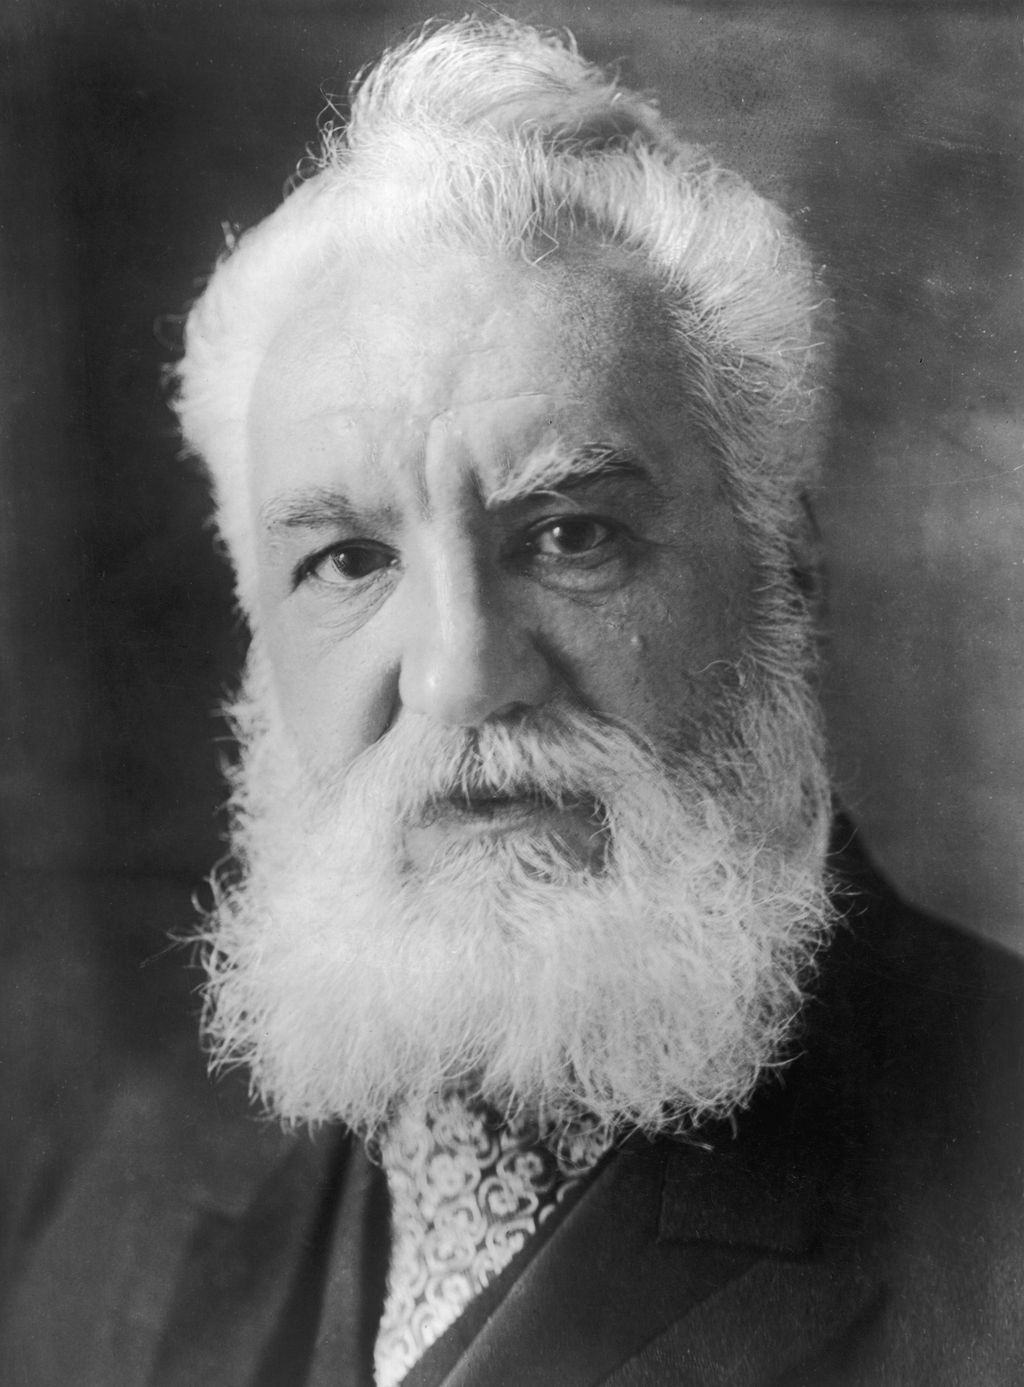 circa 1910:  Alexander Graham Bell (1847 - 1922) a Scots-born American inventor who established  the Bell Telephone Company. Bell, born in Edinburgh, worked with his father, Scottish educator Alexander Melville Bell, before emigrating to North America in 1871. In 1873 he became Professor of Vocal Phisiology at Boston University. He experimented with various devices for transmitting sound until he sent the first acoustic message to his assistant in 1875. Bell patented the telephone the next year and went on to invent the photophone and gramophone. He also founded the journal  'Science' and invented the tetrahedral kite.  (Photo by Topical Press Agency/Getty Images)